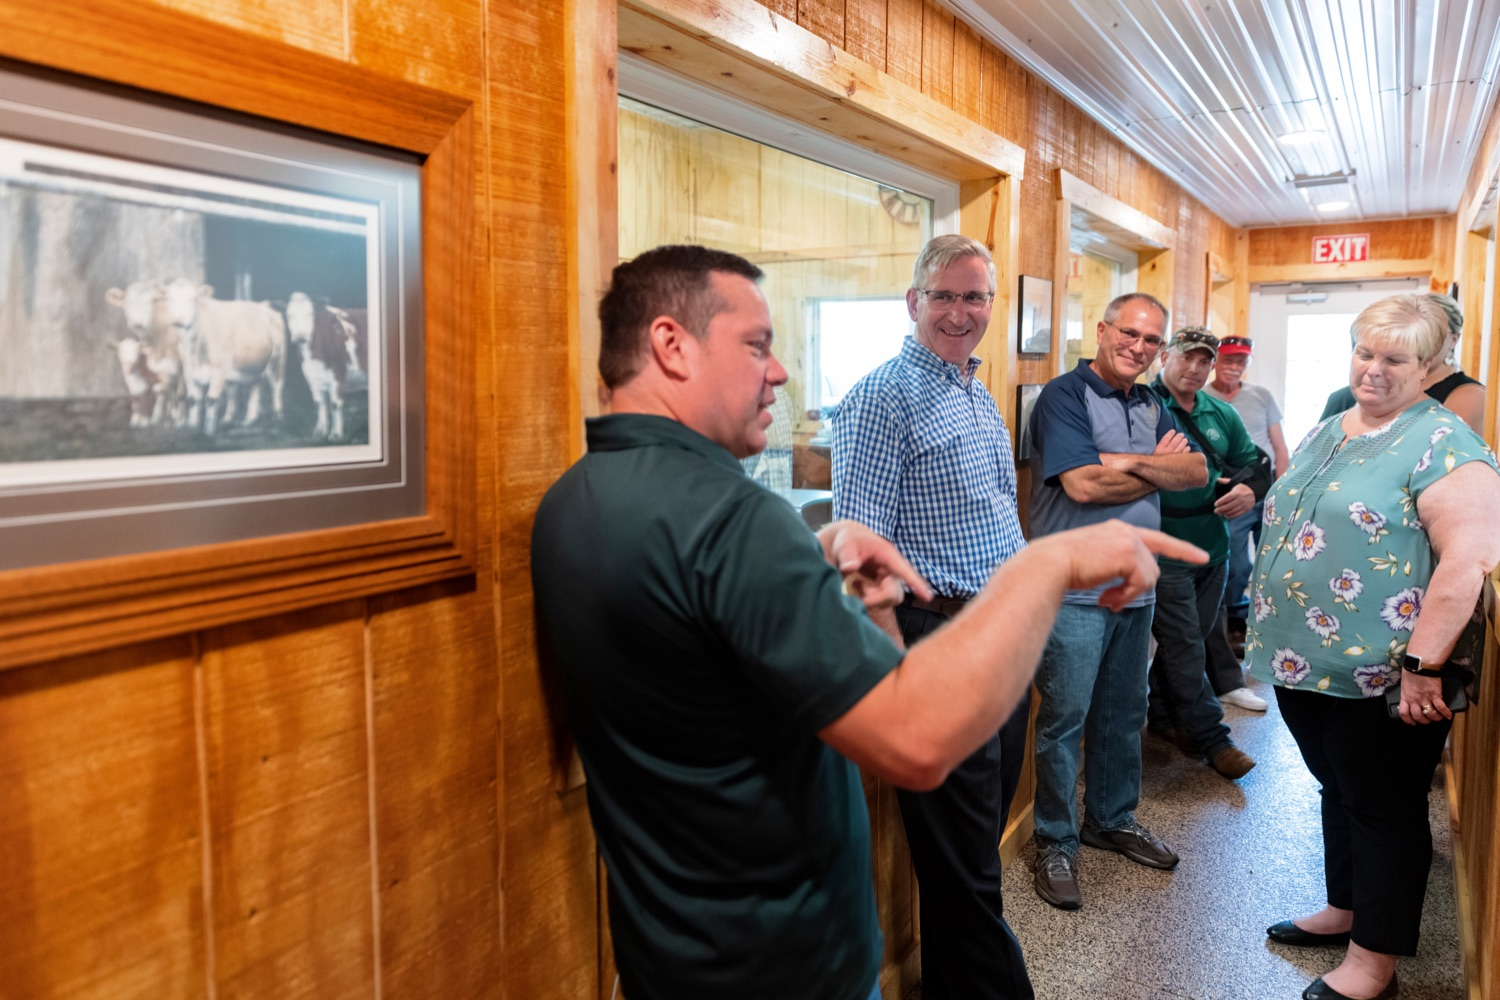 """<a href=""""https://filesource.wostreaming.net/commonwealthofpa/photo/19097_AG_DairyInnovation_NK_016.jpg"""" target=""""_blank"""">⇣Download Photo<br></a>PA Dept. of Agriculture Secretary Russell Redding gets a tour of Pleasant Lane Farms Co-Owner Jason Frye at the farm in Latrobe on Thursday, September 9, 2021. In 2019, Pleasant Lane Farms reconstructed their operation and on-farm business plan to safeguard the farms future for the next generation. The Frye family constructed a new barn equipped with a robotic milker, atmospheric climate control to regulate barn temperature and cow brushes to promote cow comfort. The barn directly supplies the on-farm cheese processing facility, which received a $364,082 Pennsylvania Dairy Investment Program grant to support marketing and value-added processing equipment investments. Today, the creamery at Pleasant Lane Farms processes 15,000 to 25,000 pounds of milk and produces more 1,700 to 2,900 pounds of cheese each week."""